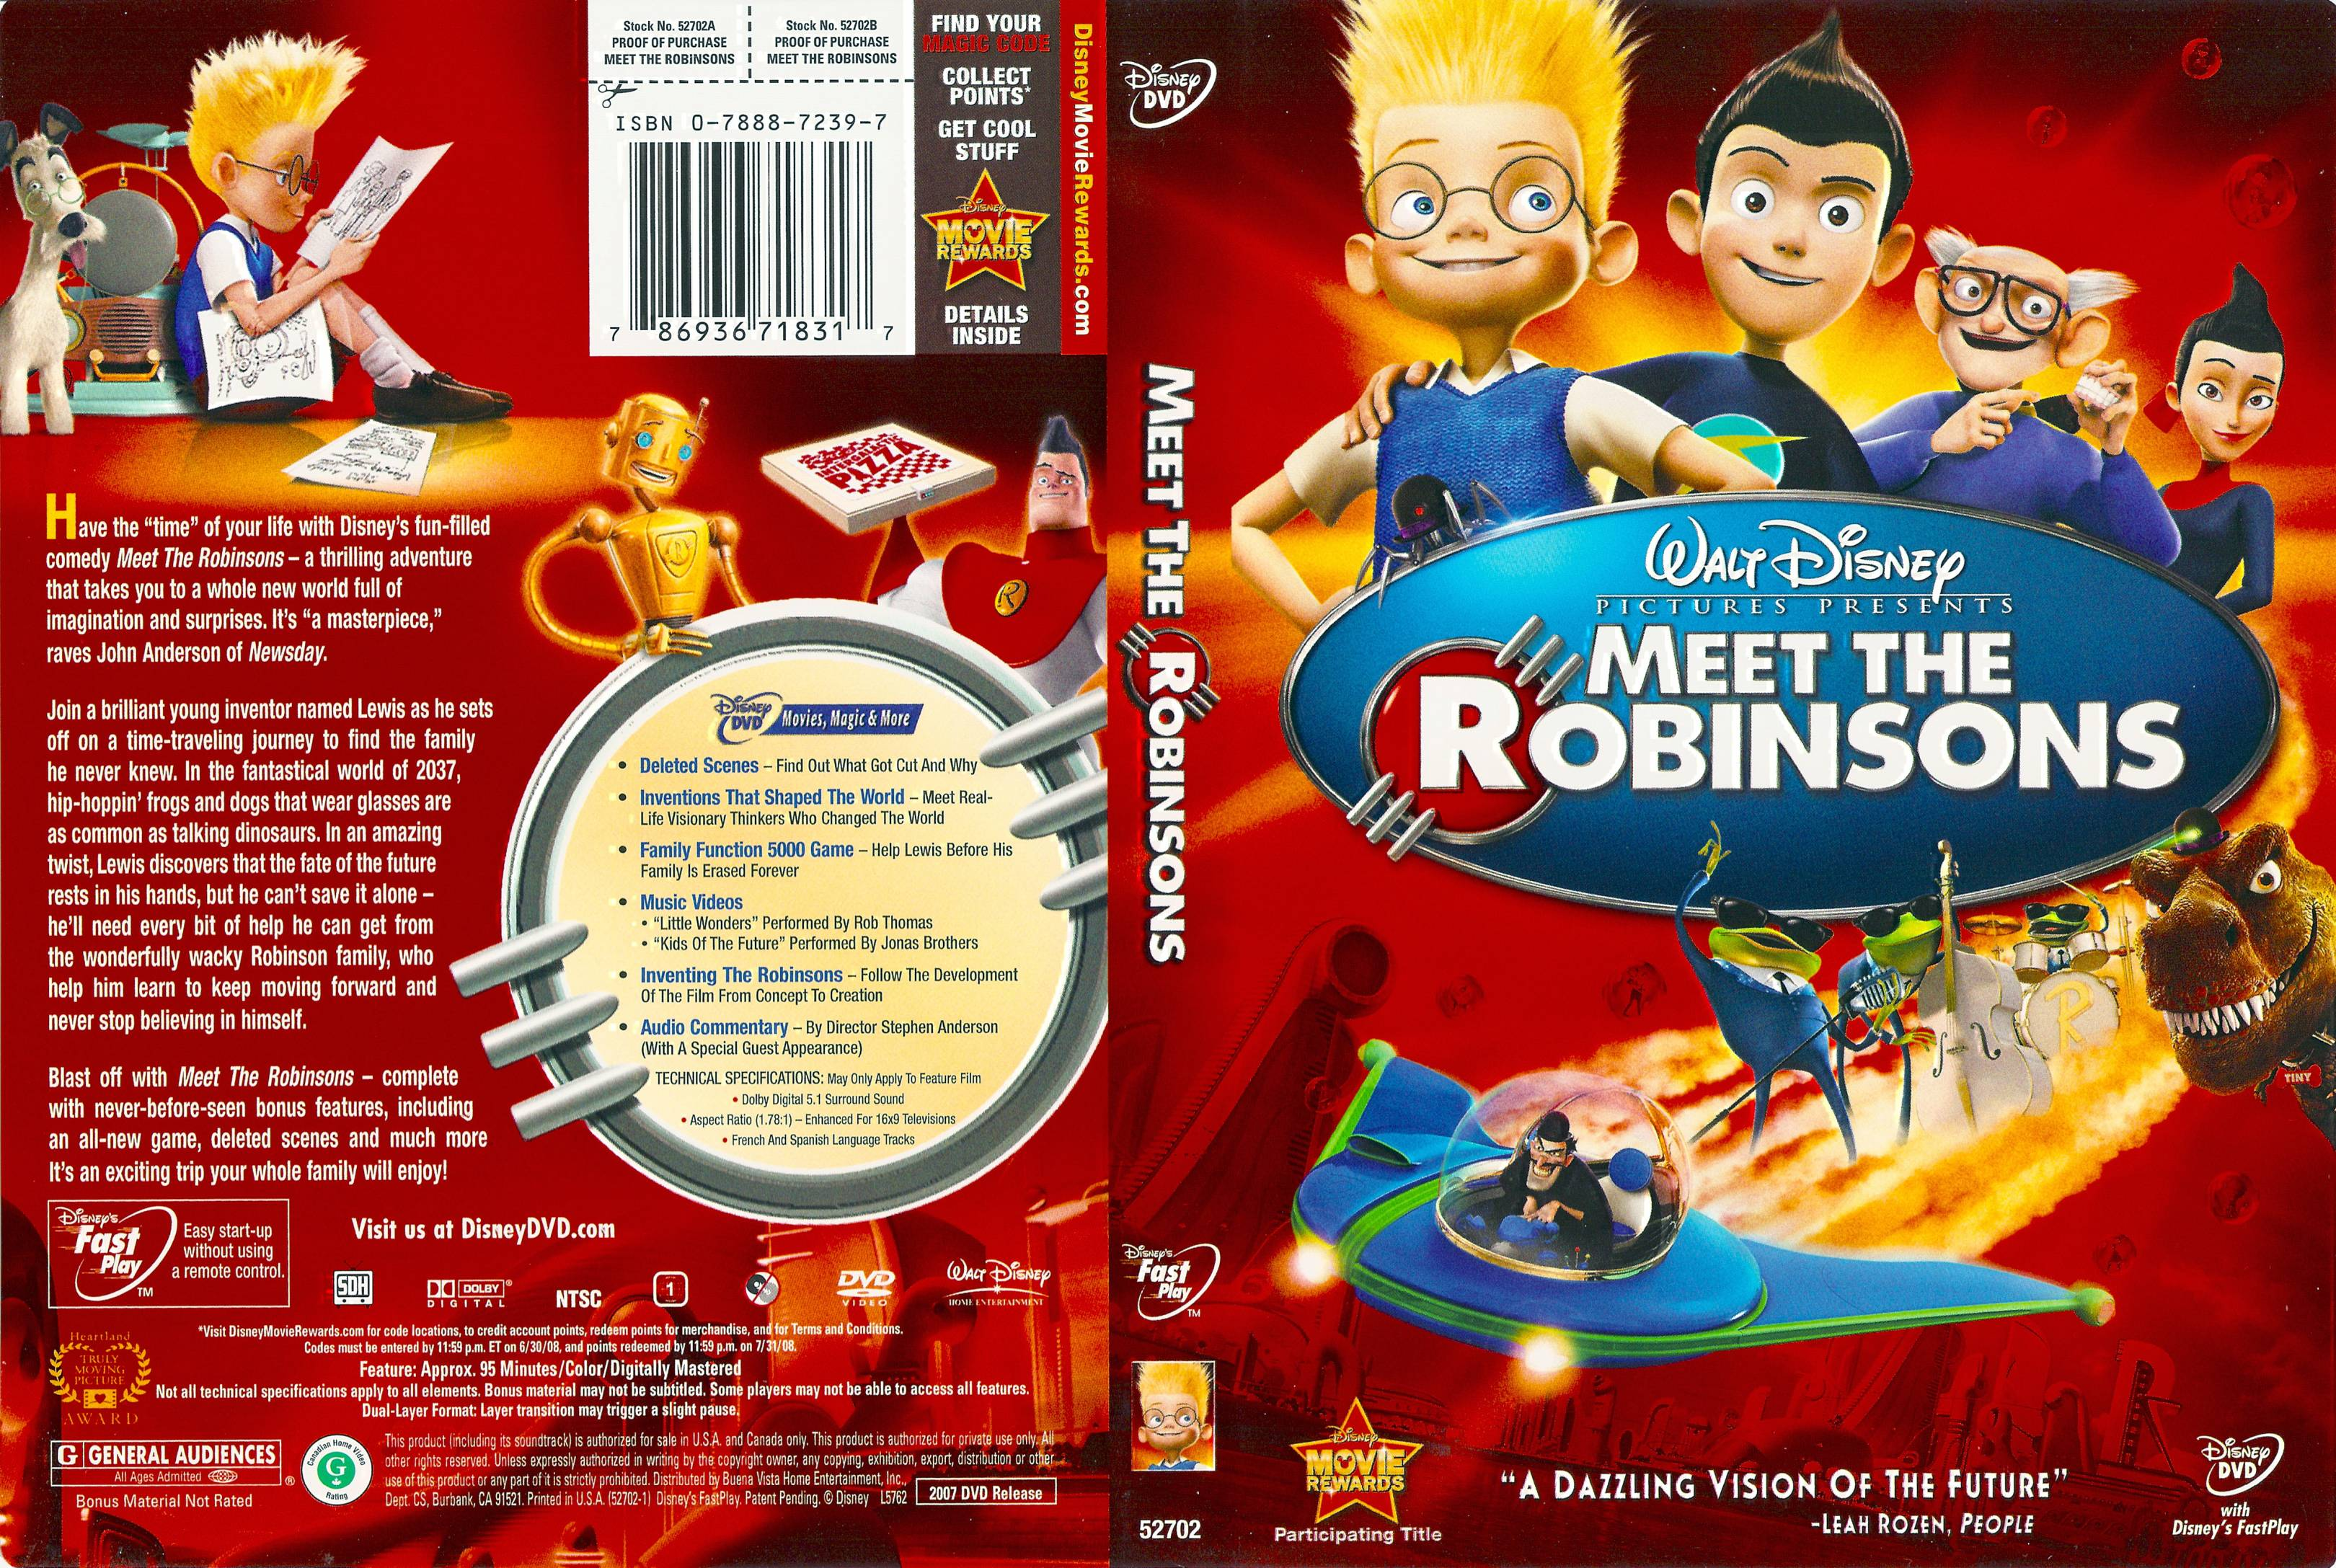 covers box sk meet the robinsons 2007 high quality dvd